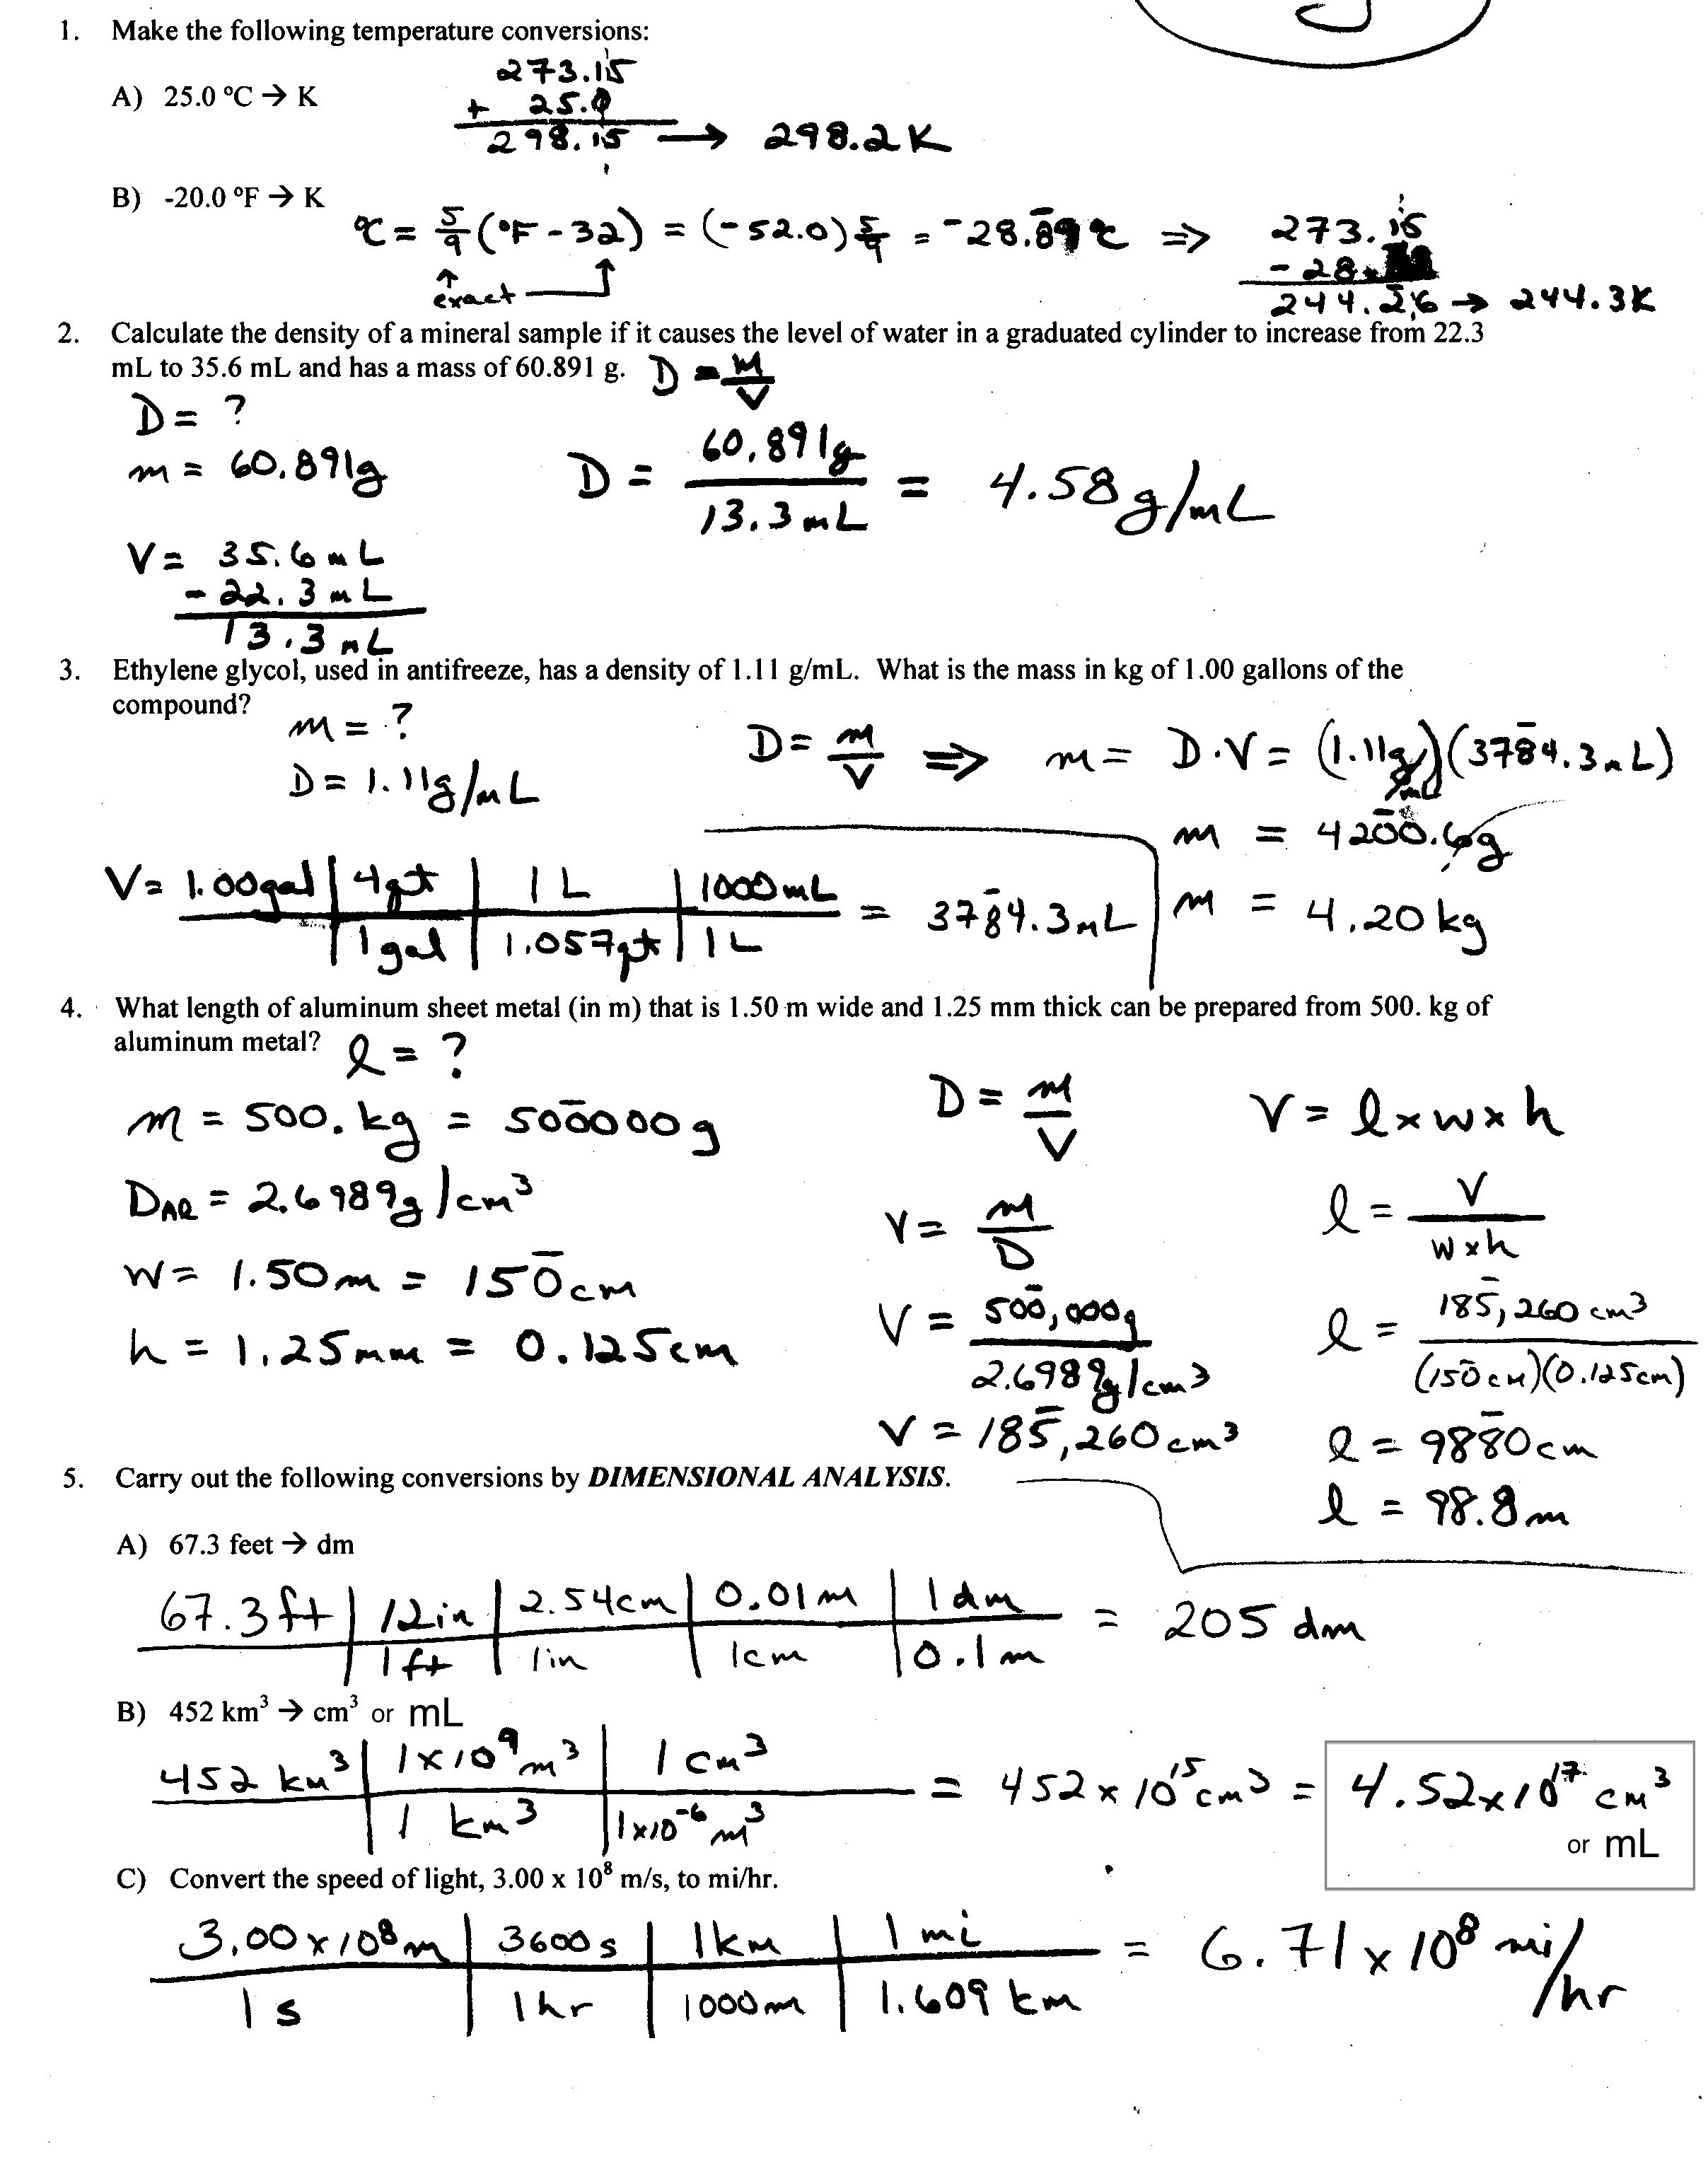 Worksheet On Density With Answer Key - worksheet on density with ...